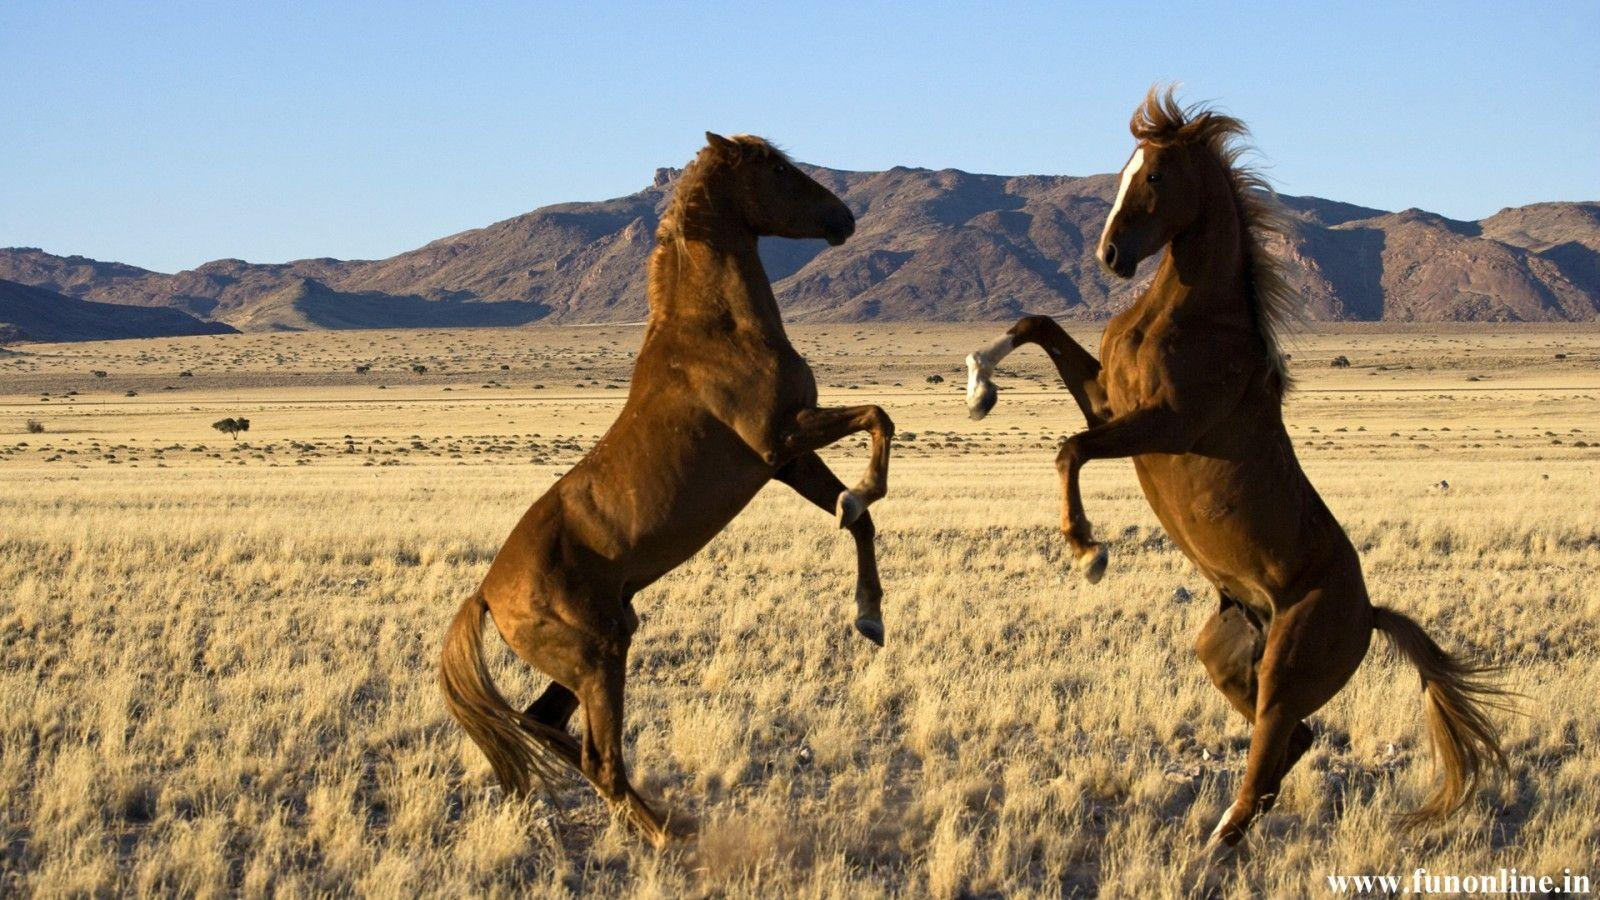 spring wild horse wallpaper - photo #1